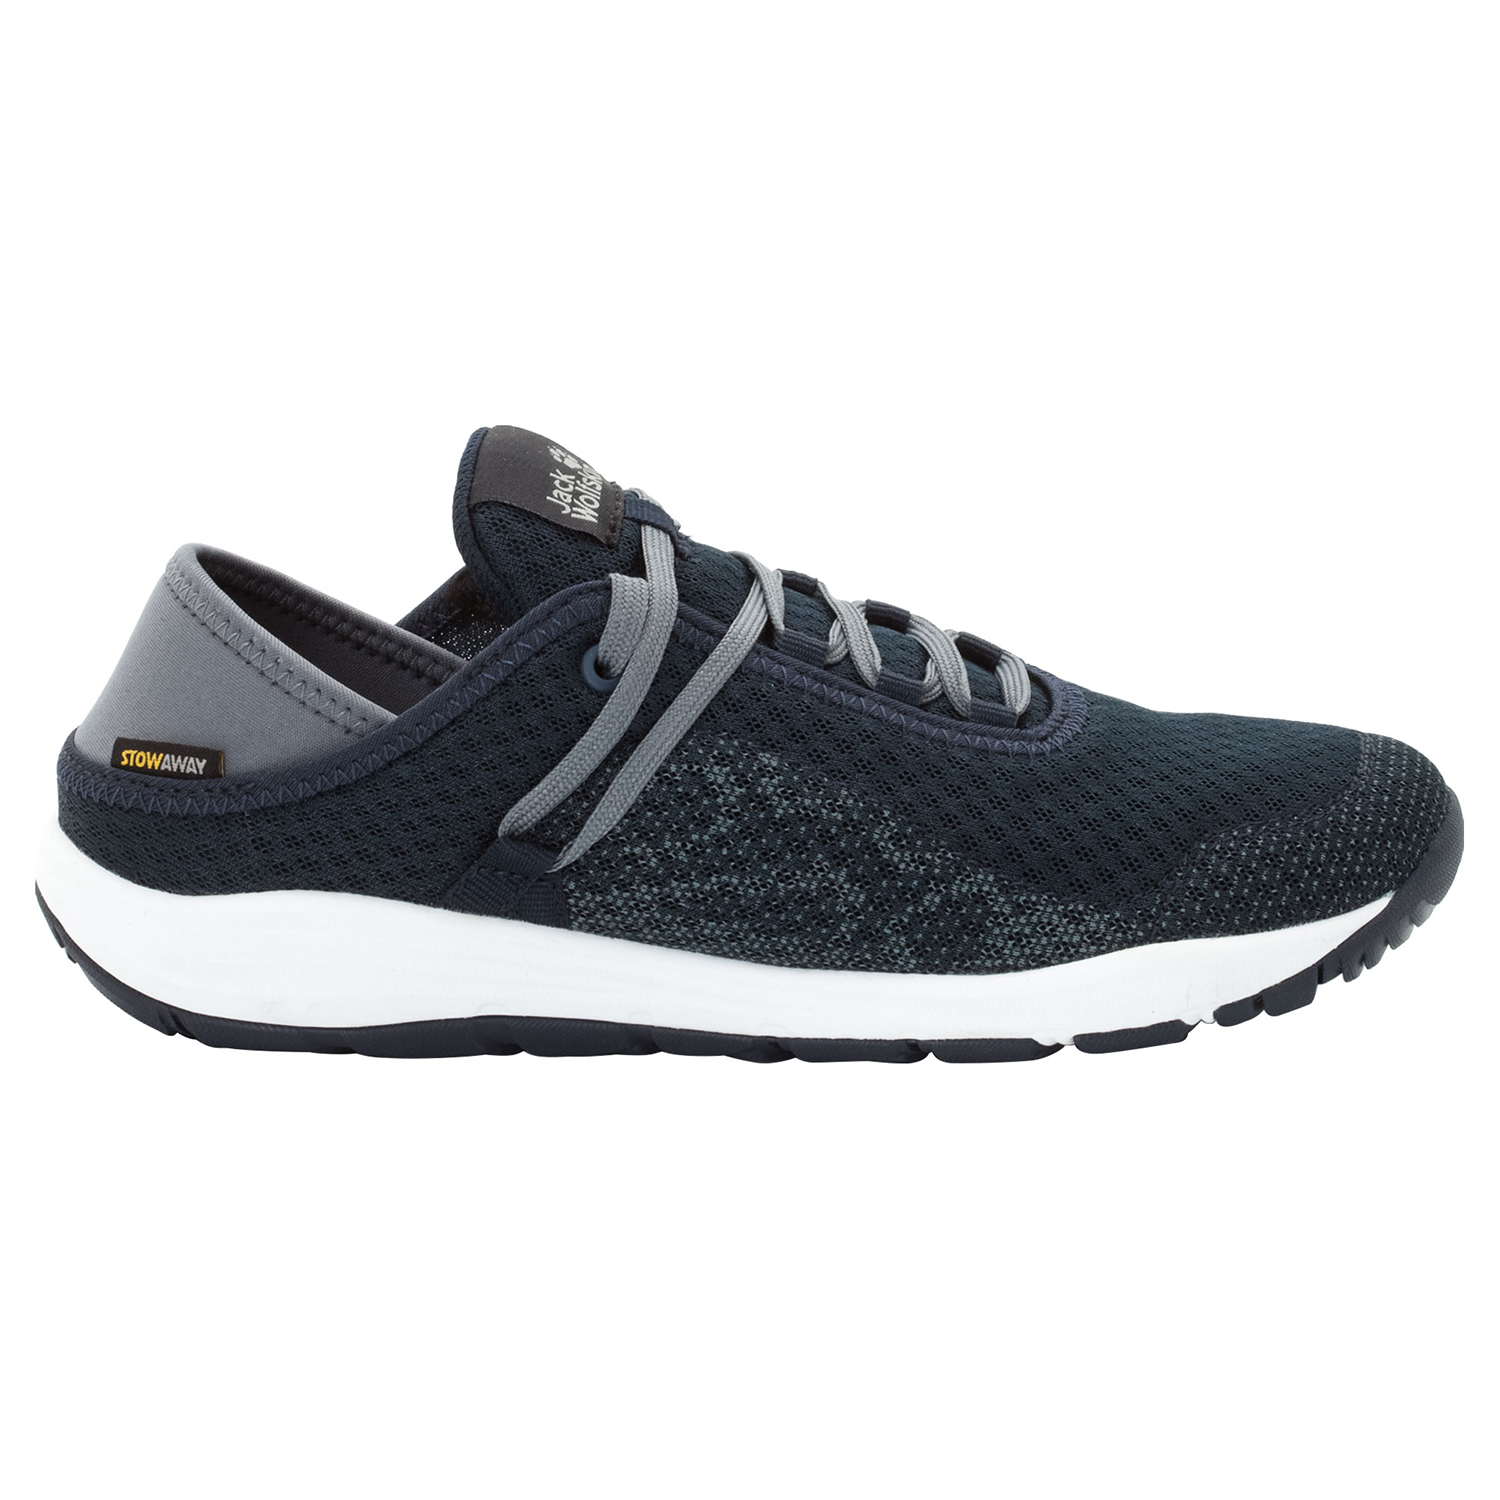 Jack Wolfskin Seven Wonders Packer Low Schuhe available at Webtogs